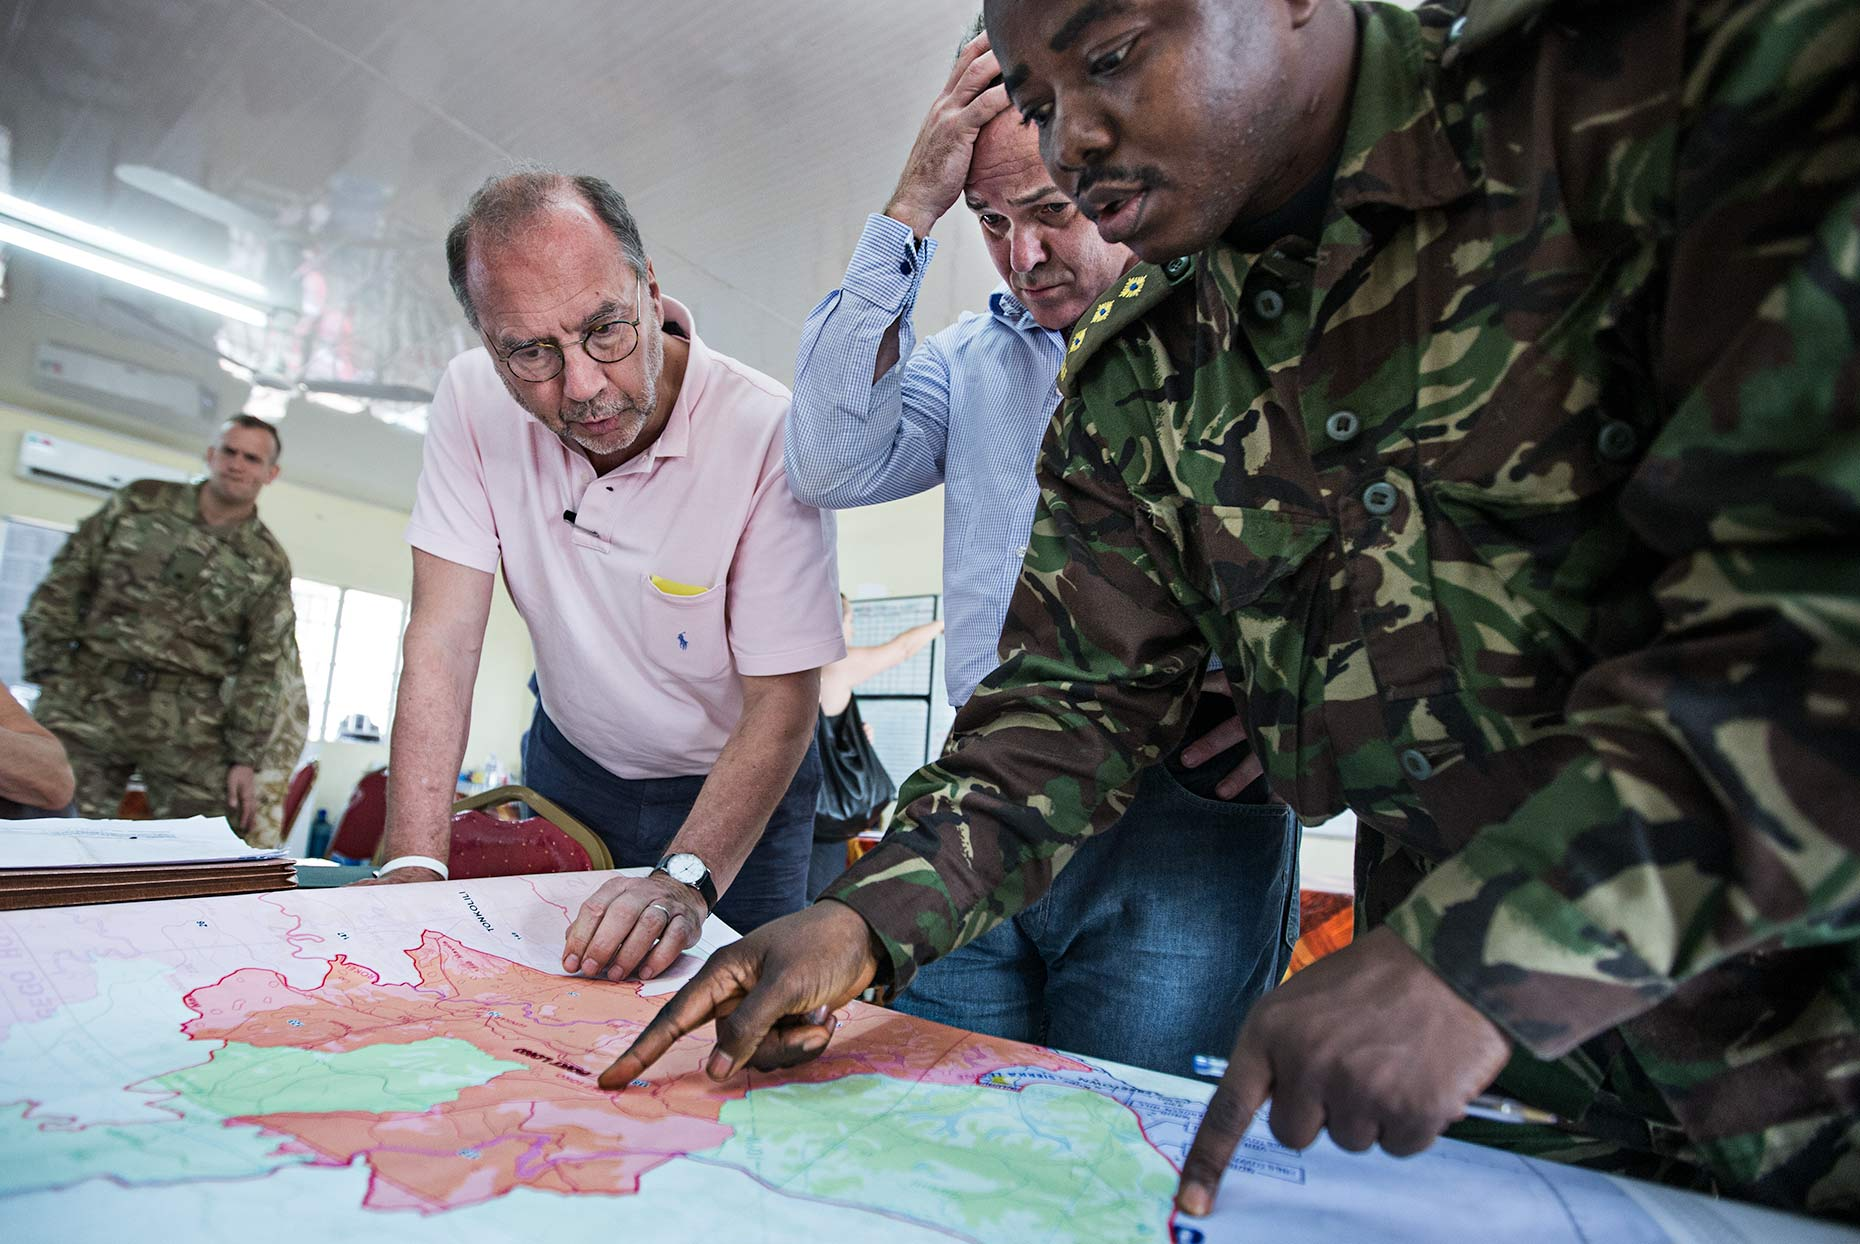 Global health experts convene wiht the military over the spread of the Ebola virus